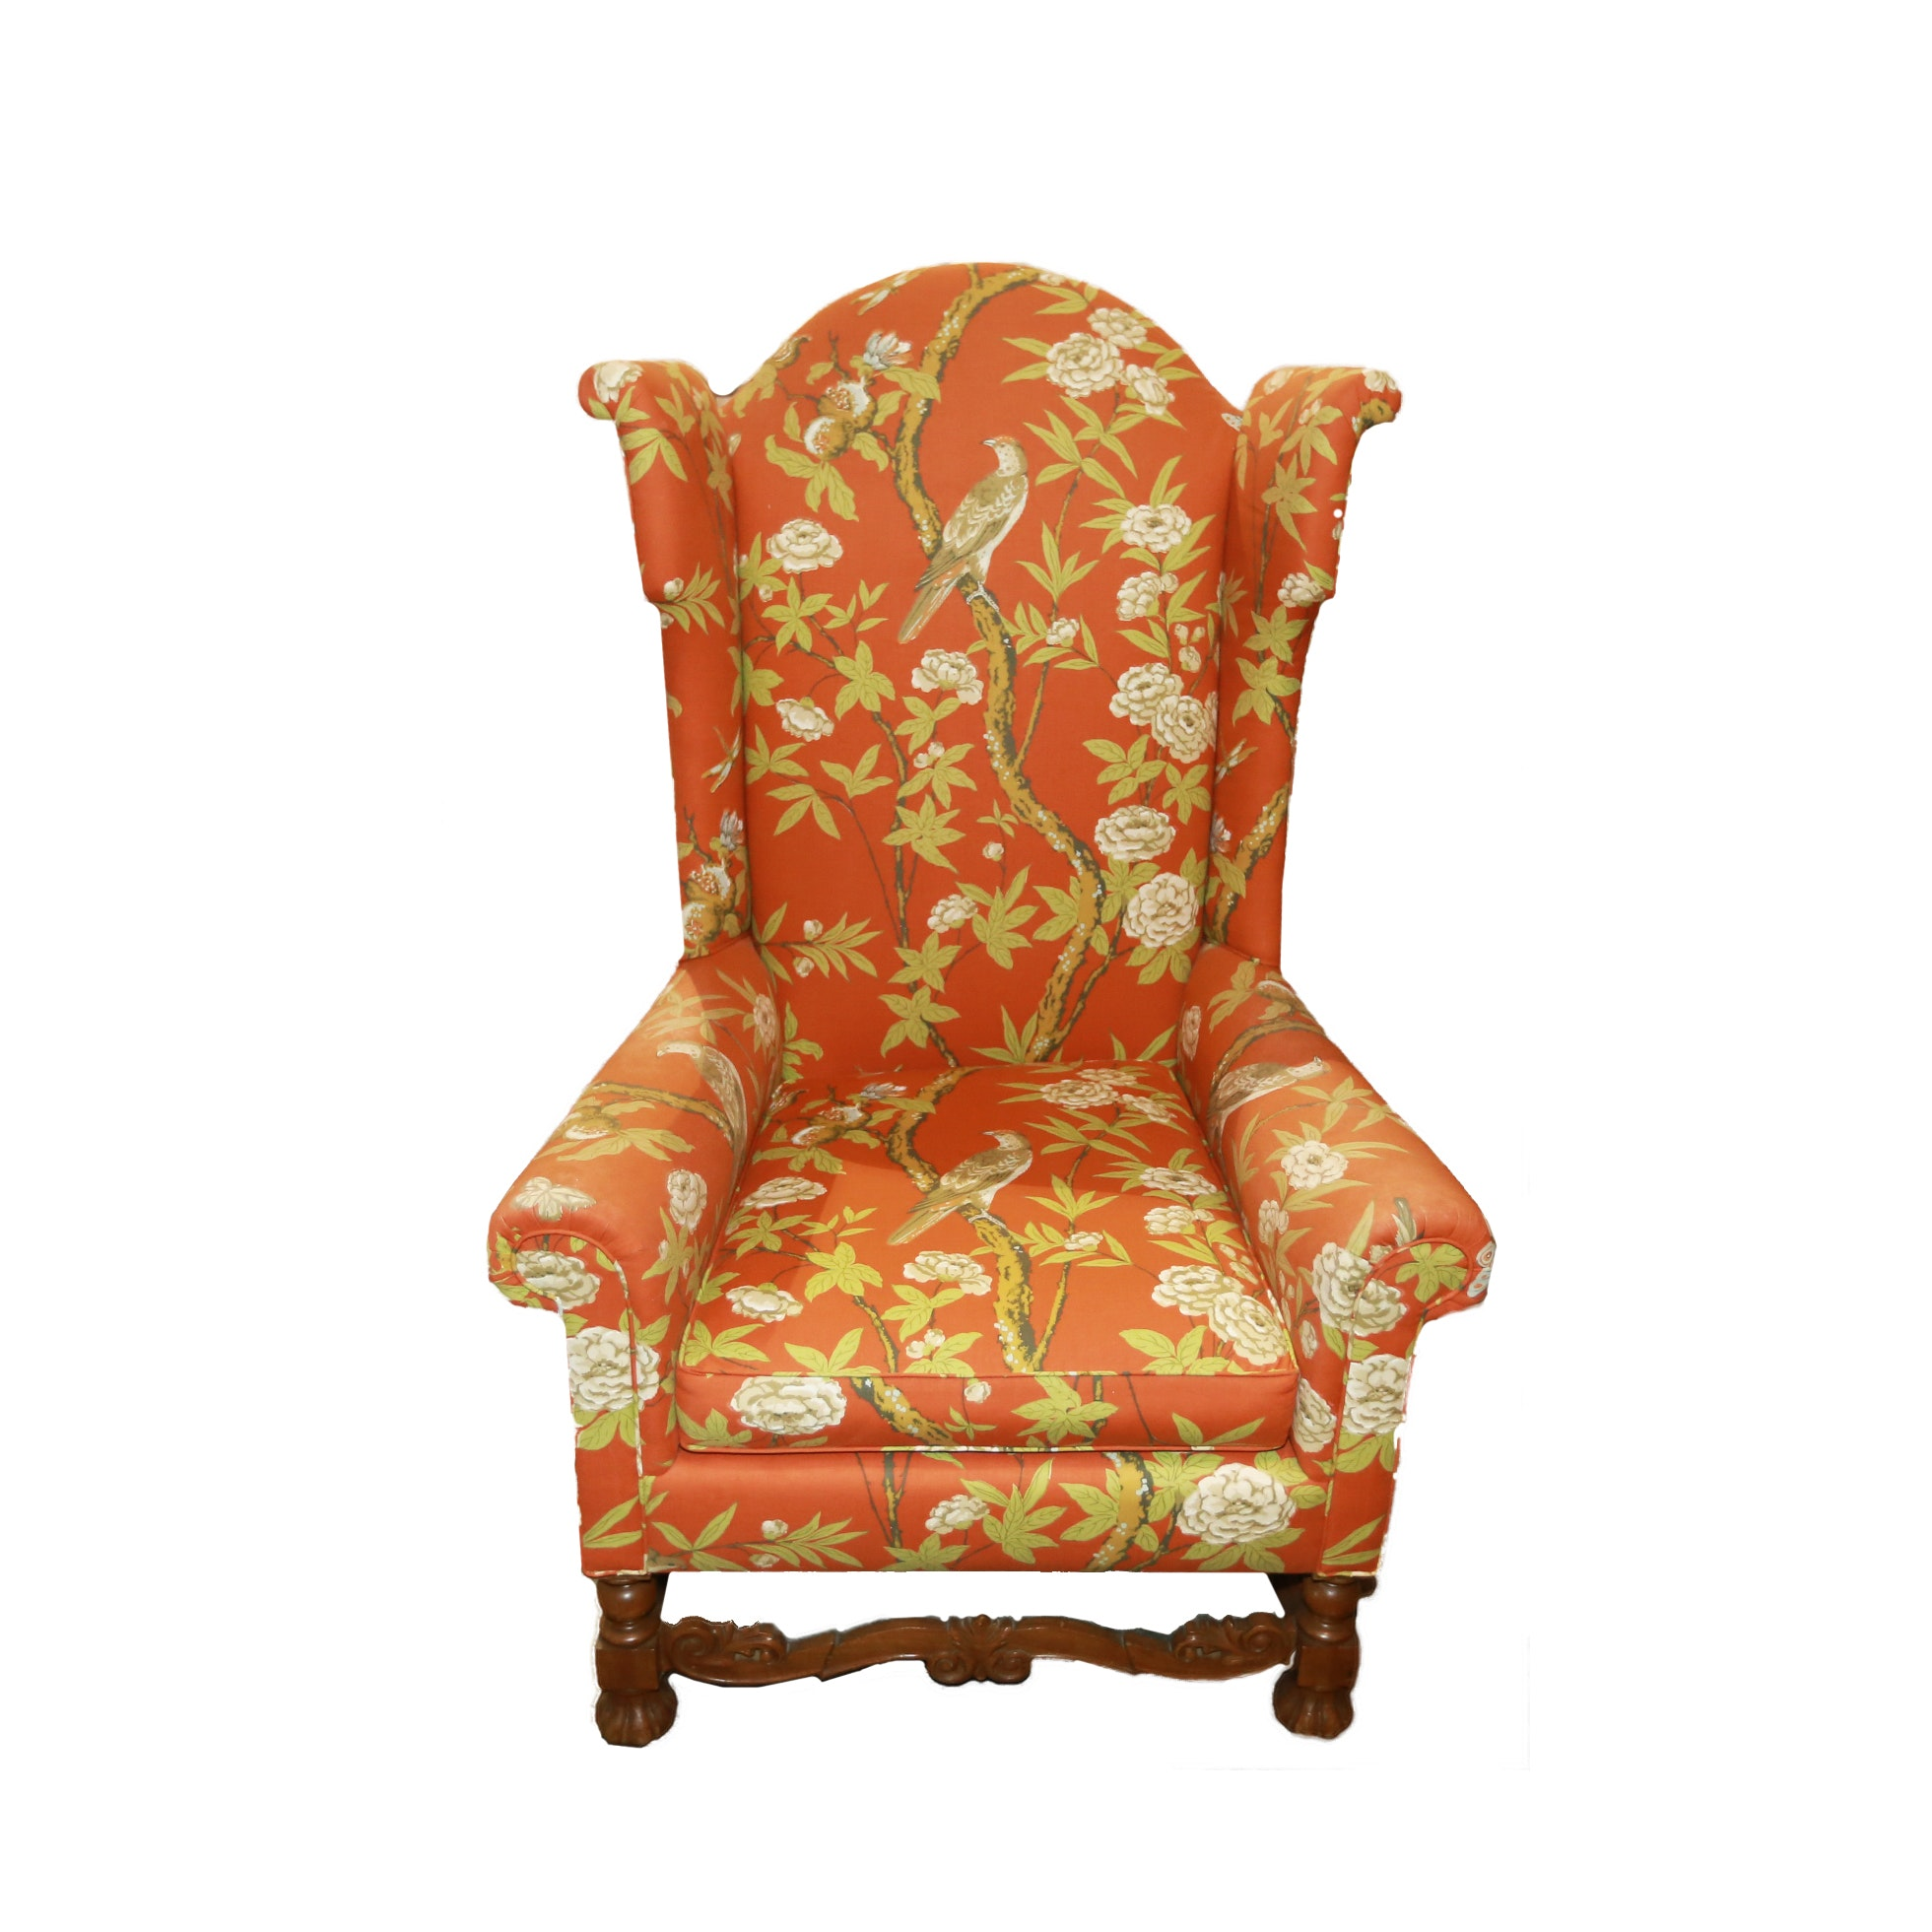 Upholstered High Back Armchair